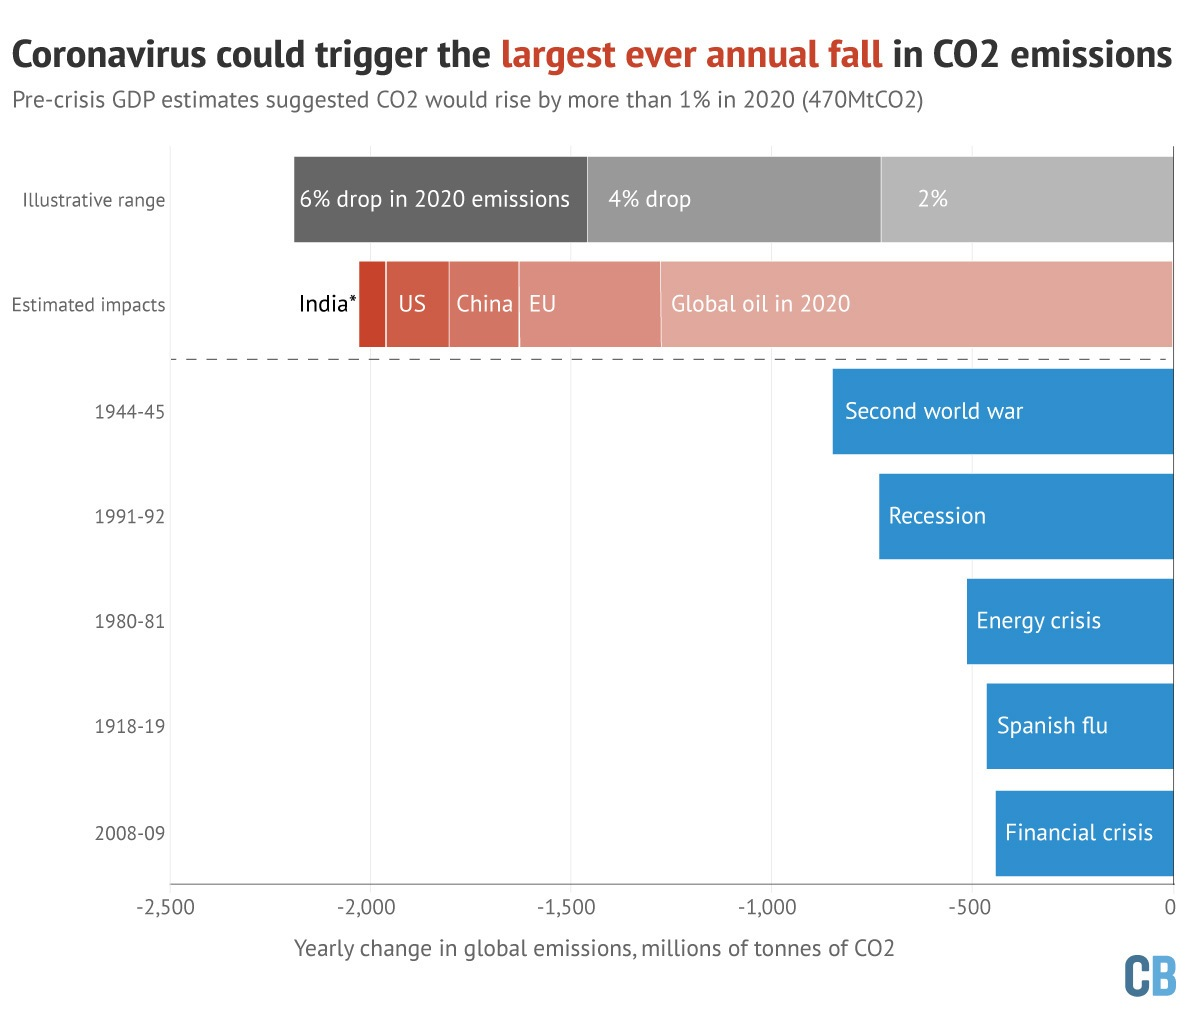 Even if the 2,000 MtCO2 annual cuts come to pass, they would still fall short of the nearly 2,800 MtCO2 required this year to limit global warming to 1.5C, Carbon Brief said. Graph source: Carbon Brief